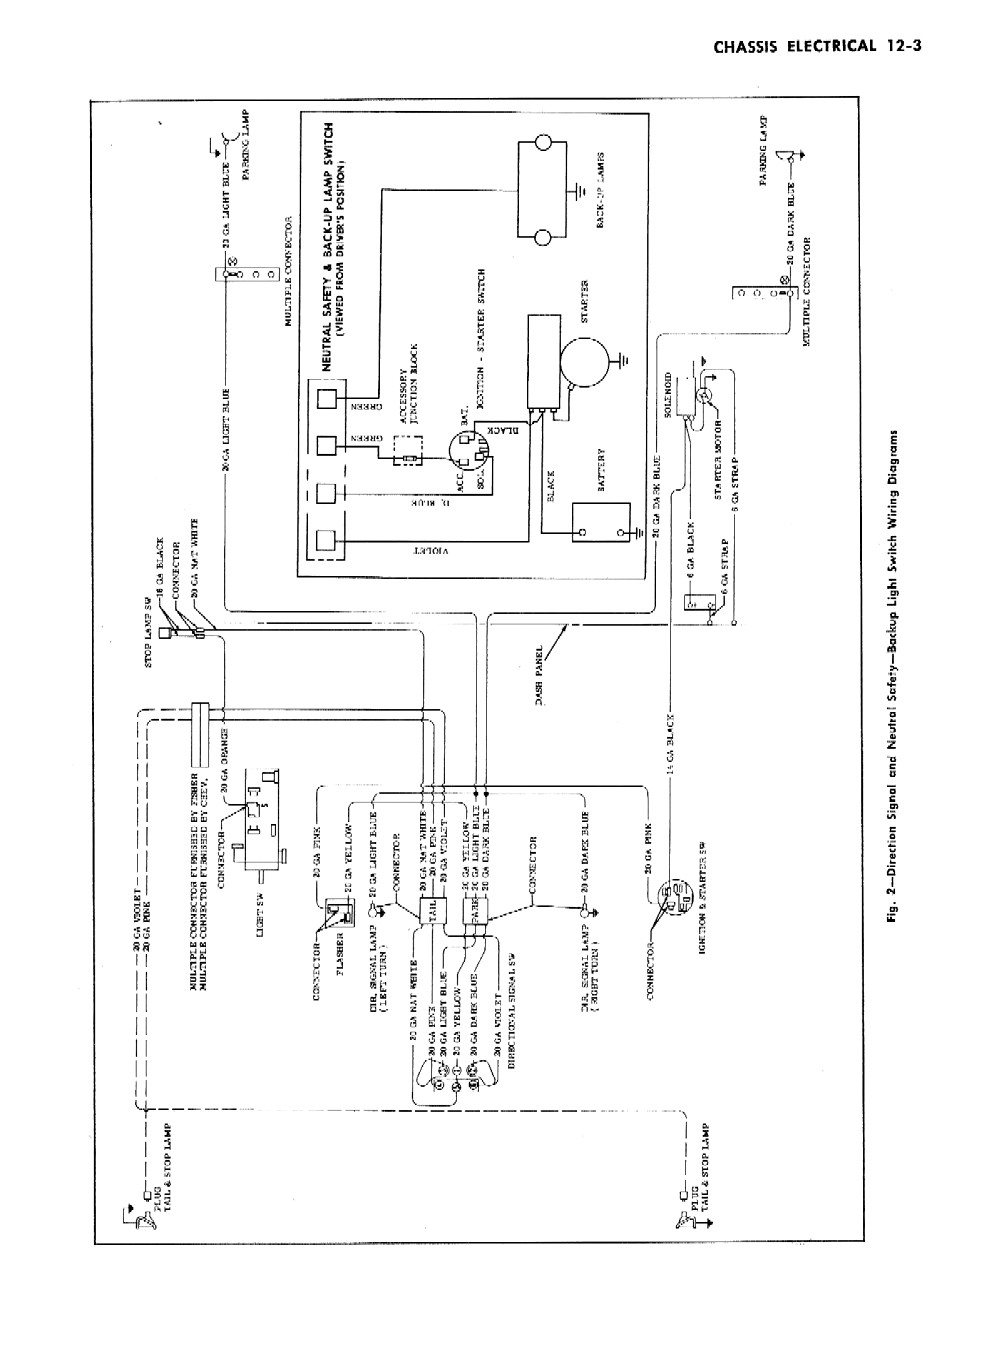 similiar 1955 chevy bel air wiring diagram keywords day 1 begin installing the new on 1955 chevy bel air wiring diagram